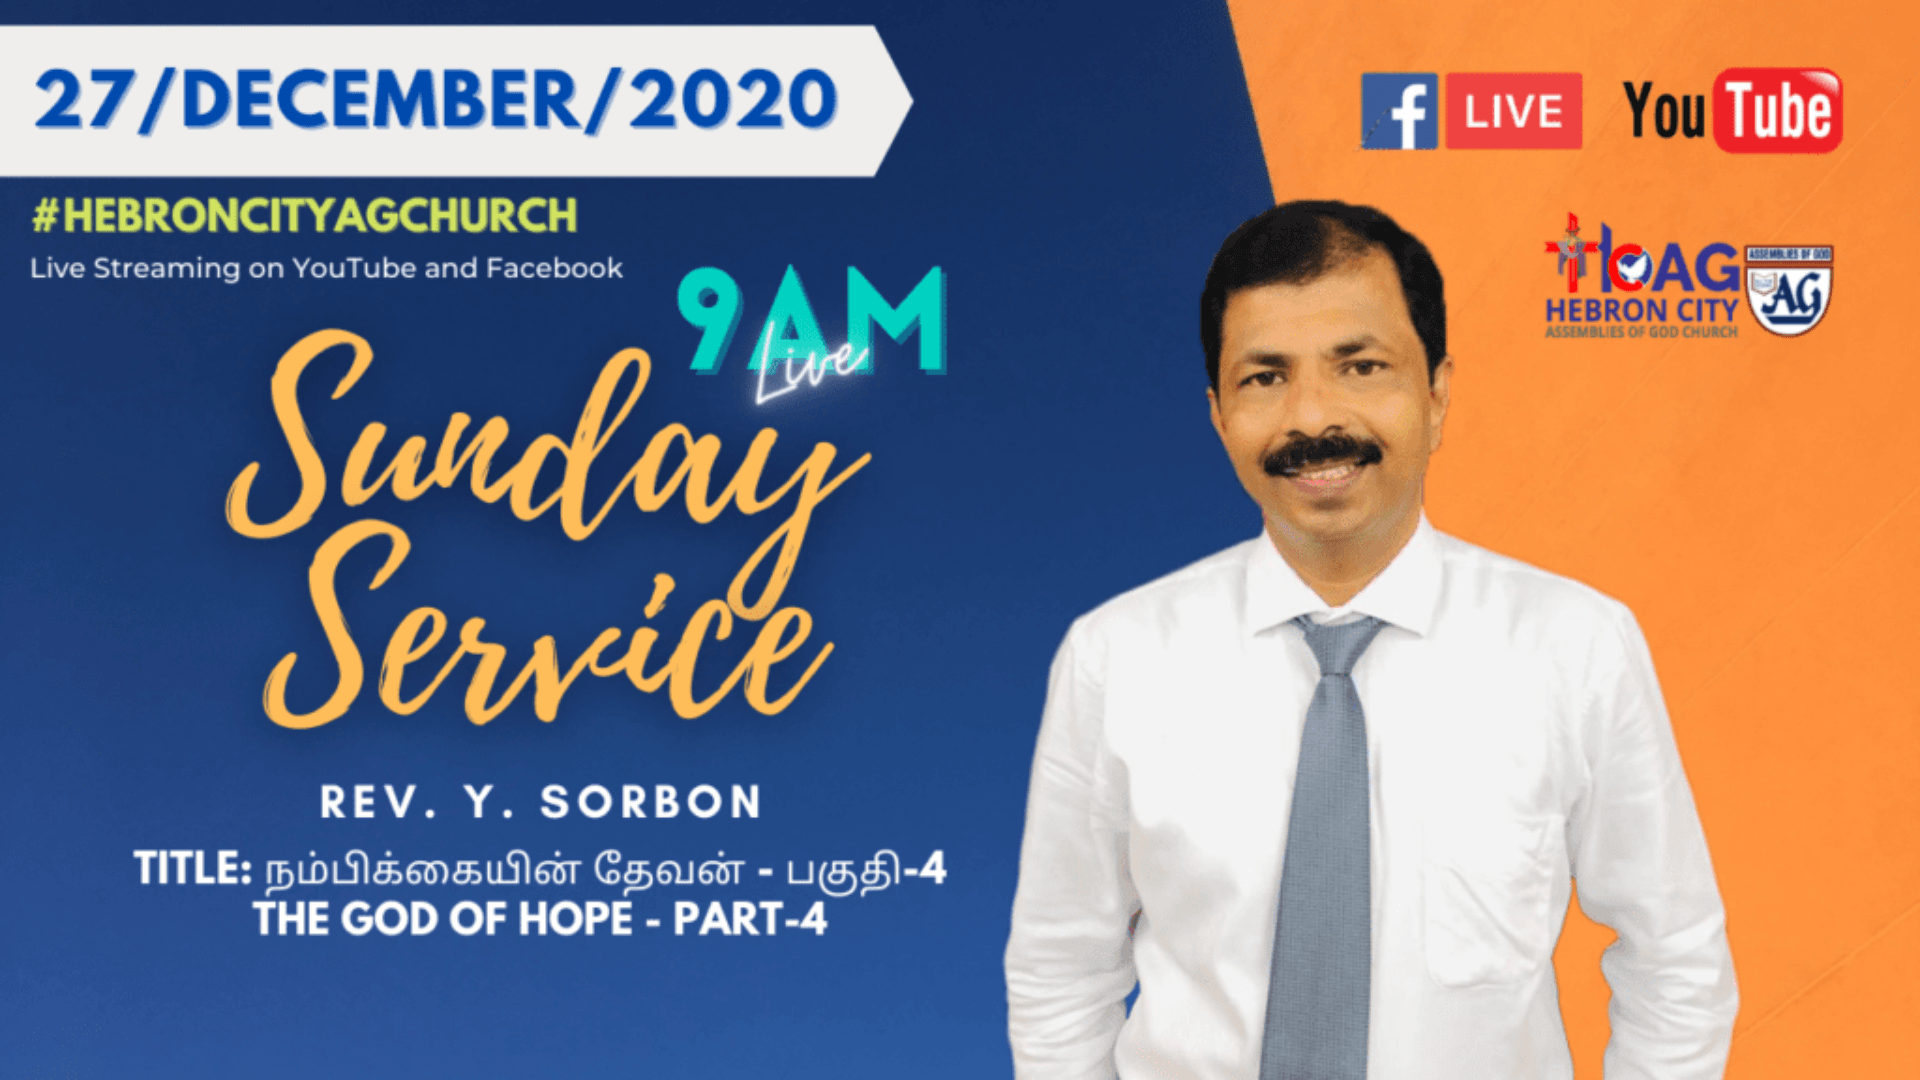 27/December/2020 | Online Sunday Service in Tamil | The God of Hope Part-4 | Hebron City AG Church